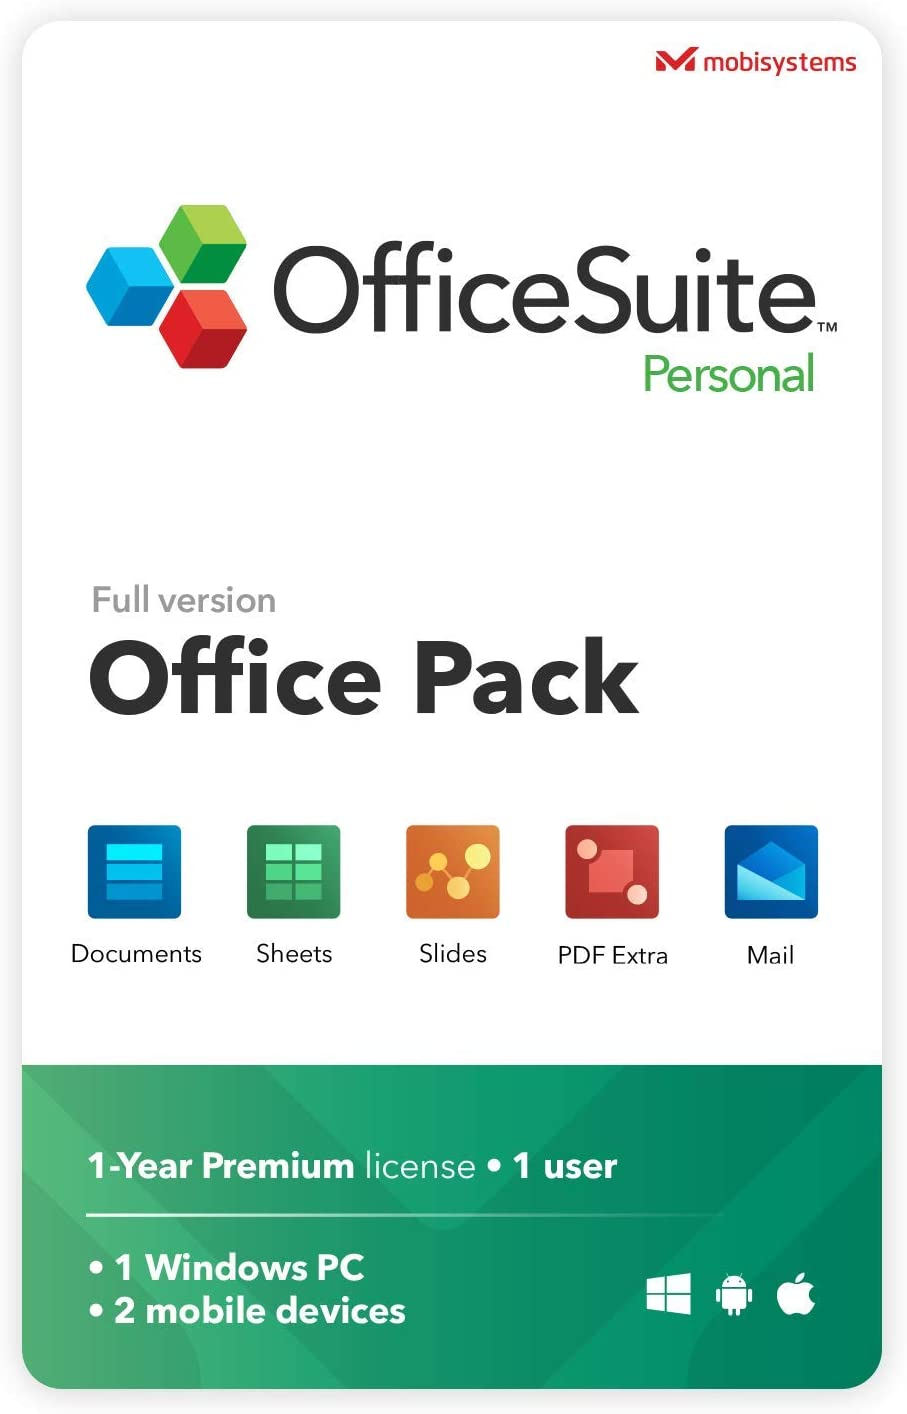 OfficeSuite Personal Compatible with Microsoft® Office Word® Excel® & PowerPoint® and Adobe® PDF for PC Windows 10, 8.1, 8, 7 - 1-year license, 1 user